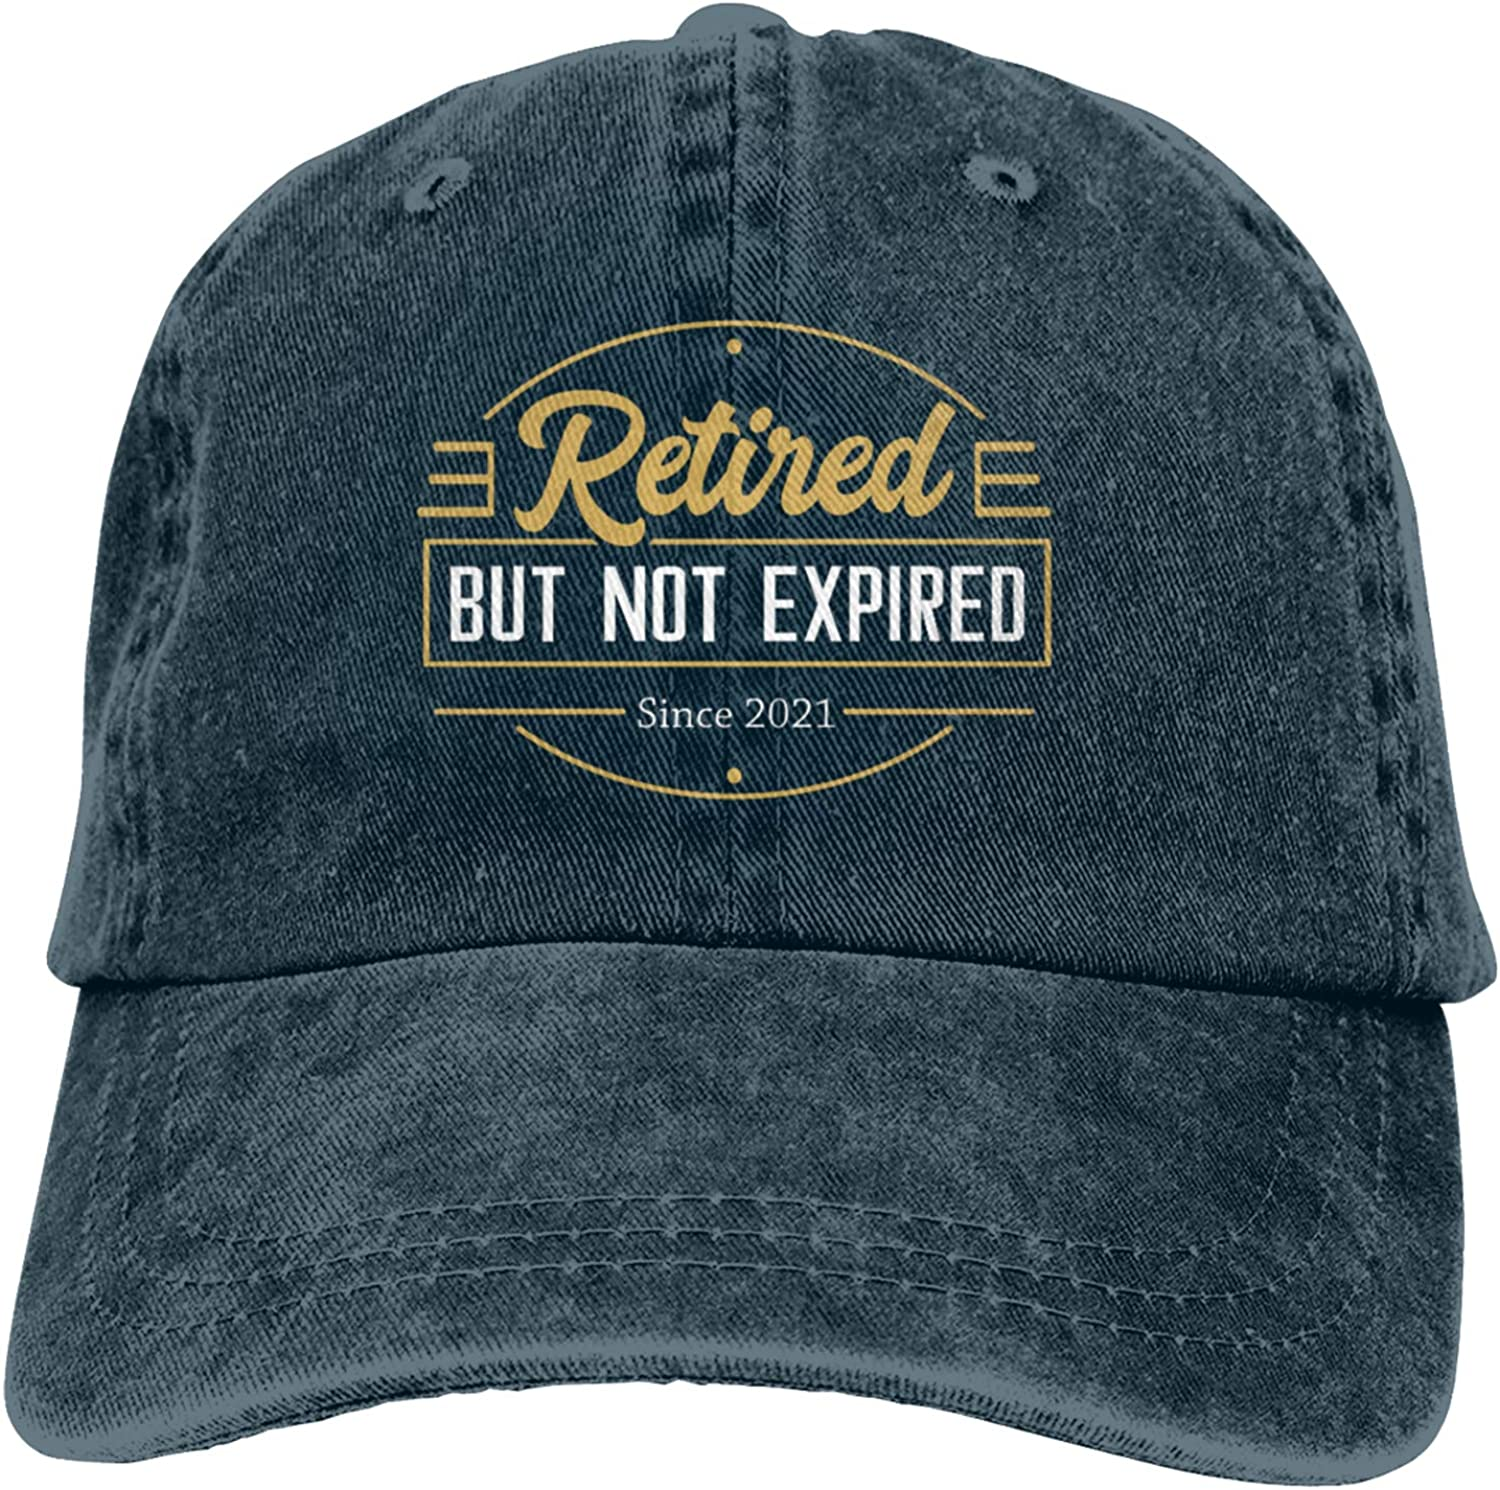 Retired 2021 Retired But Not Expired Retro Washed Baseball Cap, Retro Adjustable Classic Dad Gift Hats for Men